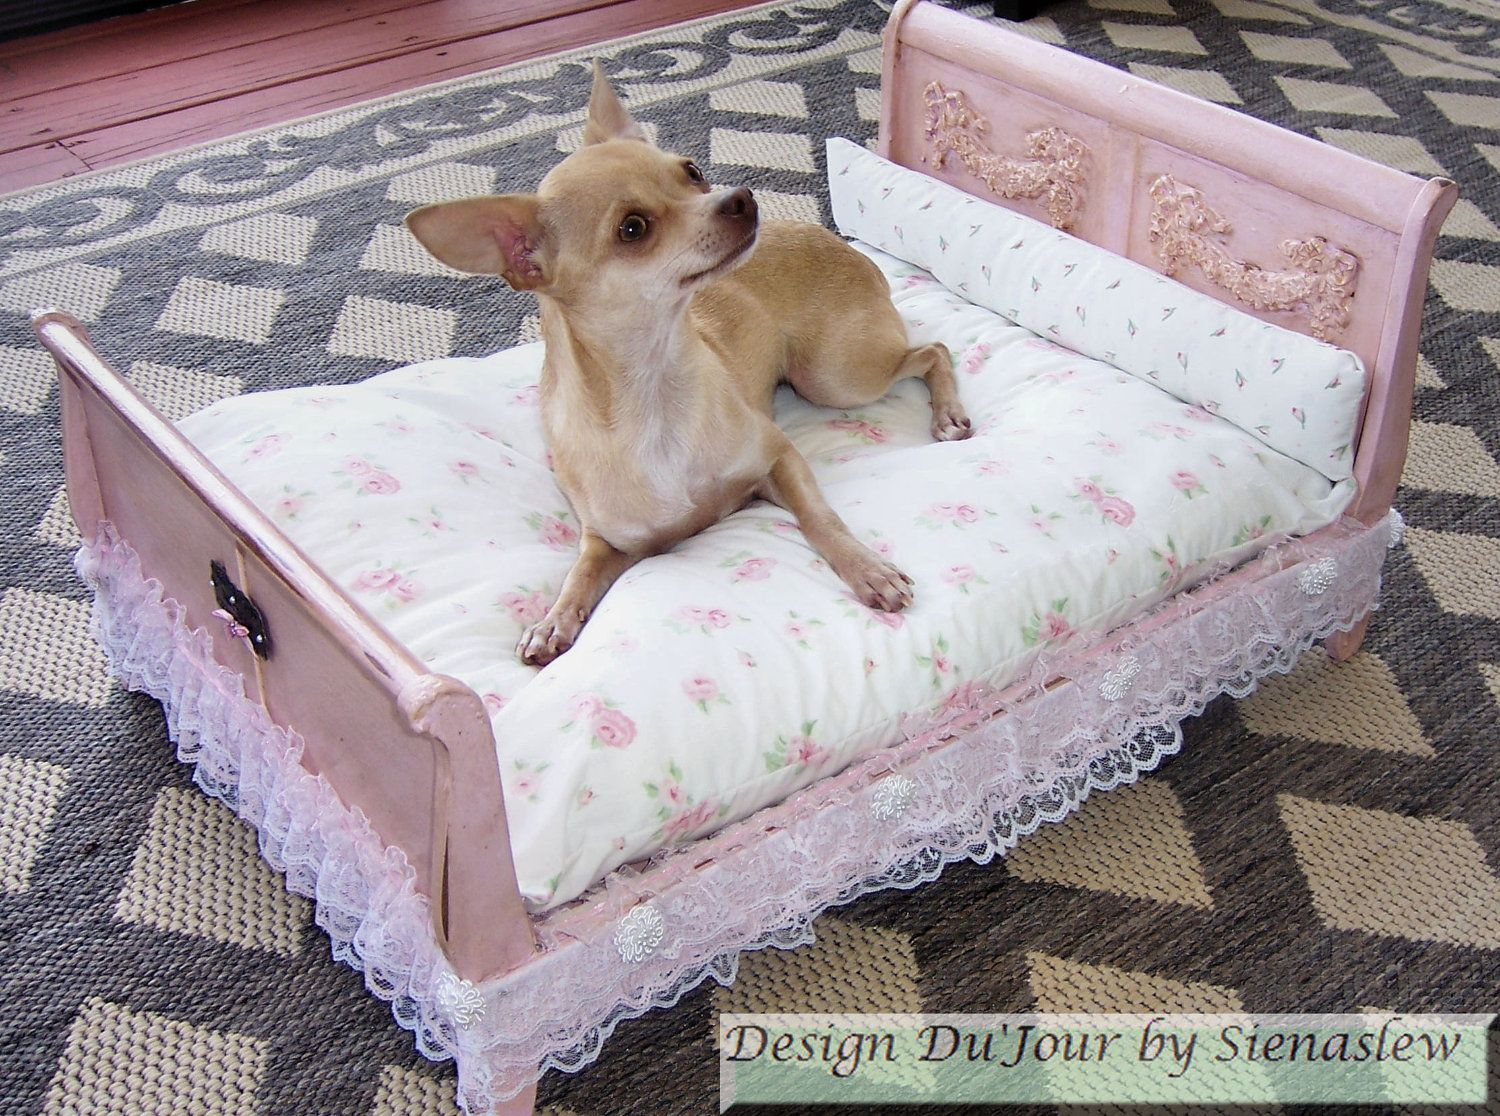 Idee Cucce Per Cani shabbychiclife: animali & shabby chic on friday | cucce di